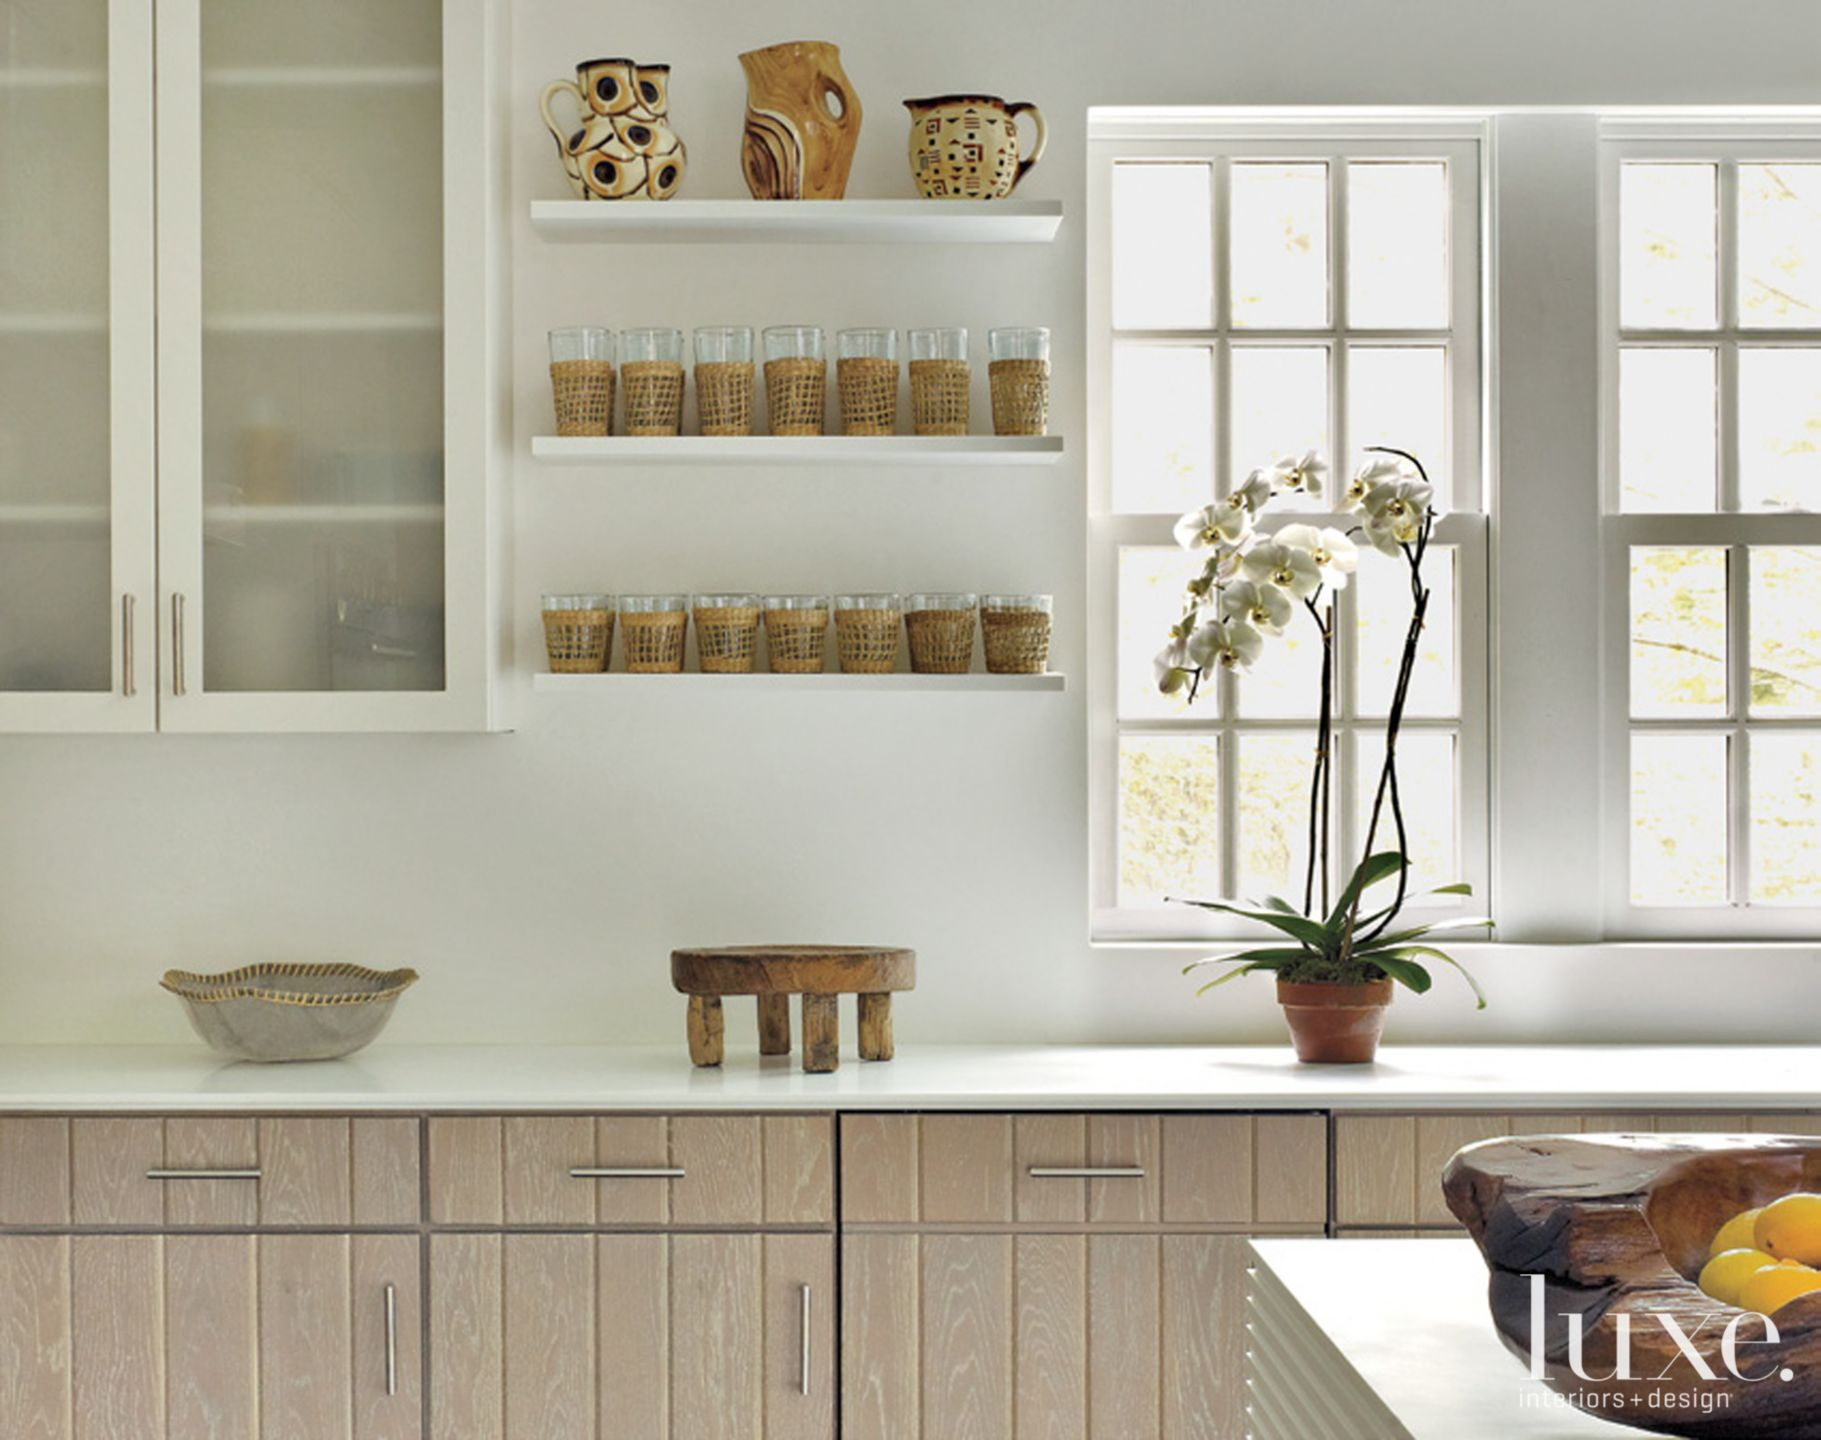 Cabinets in Clean Country Kitchen